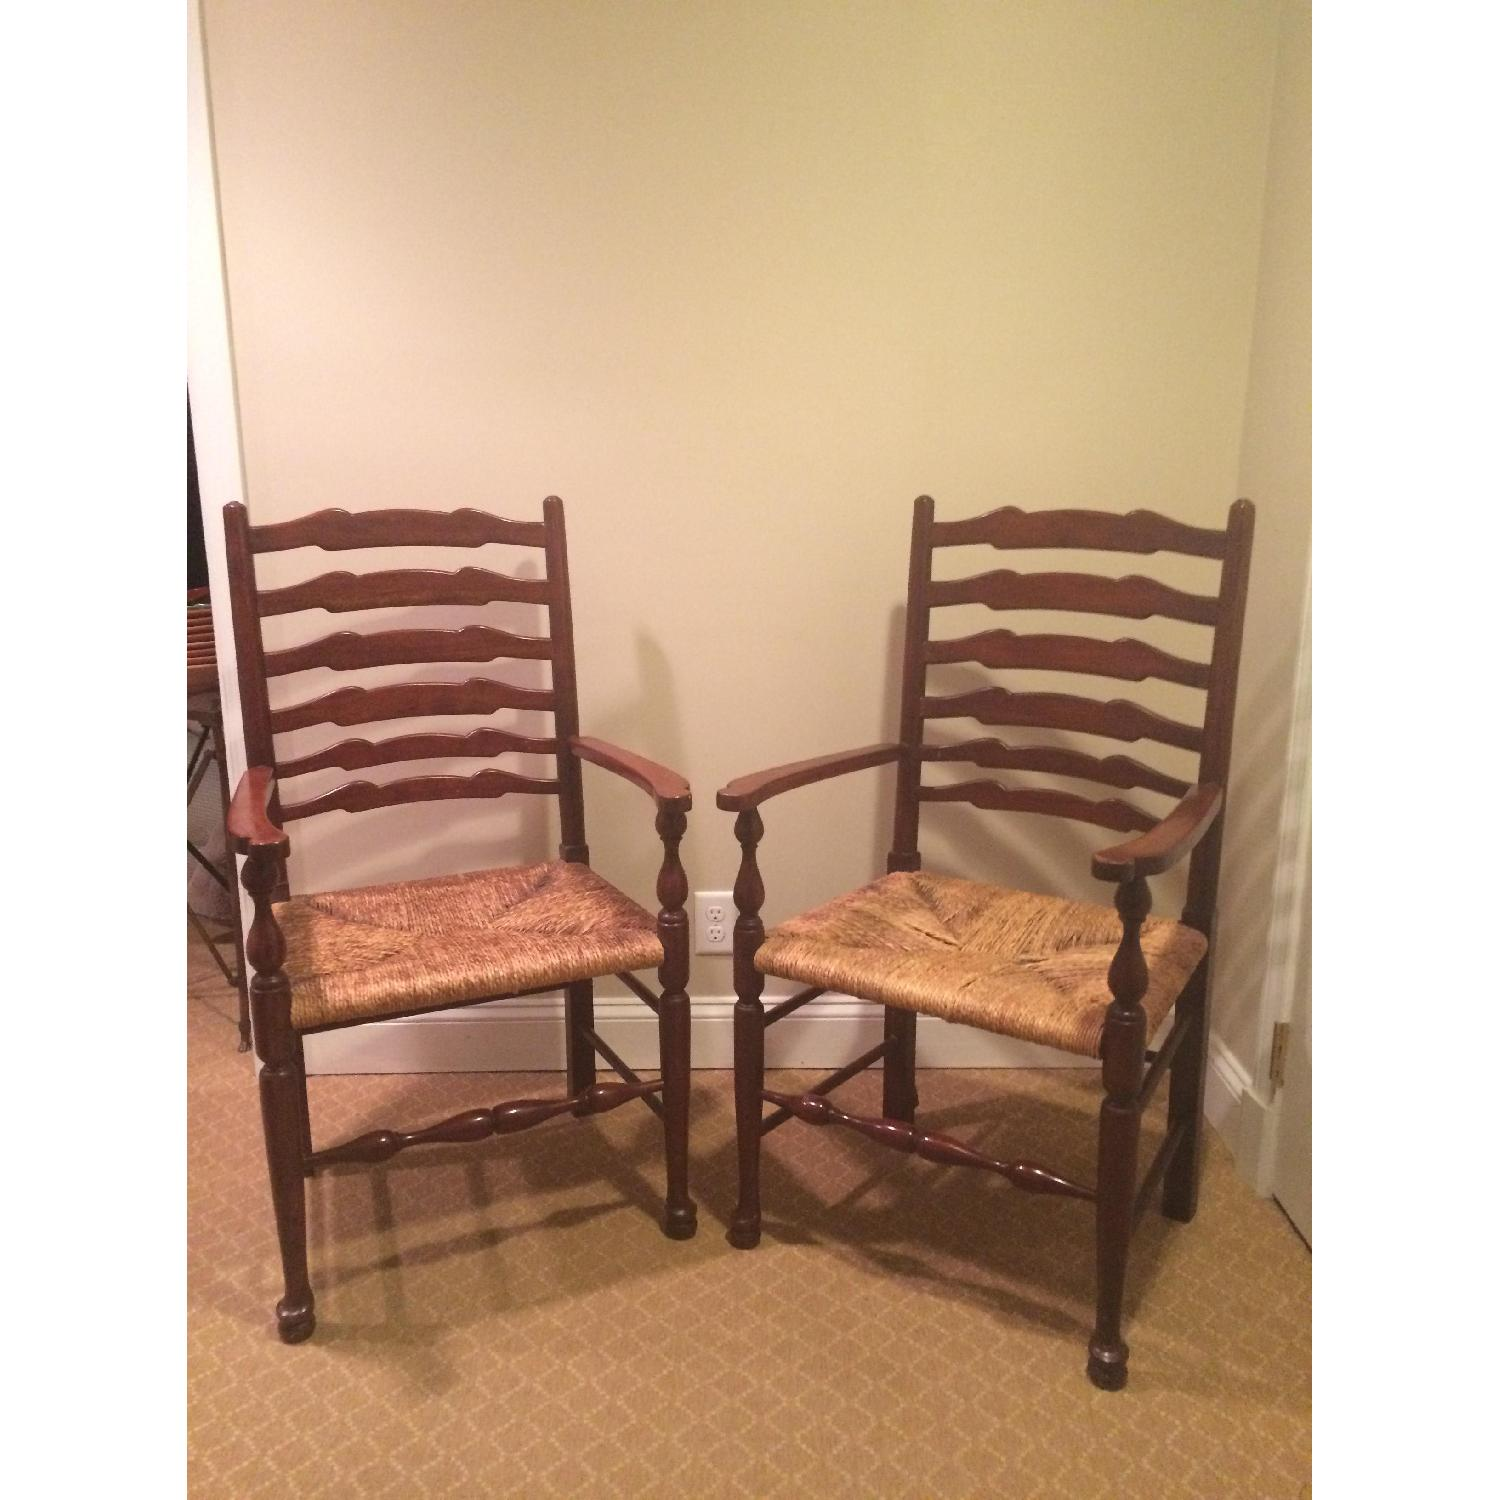 French Country Ladderback Armchairs - image-1